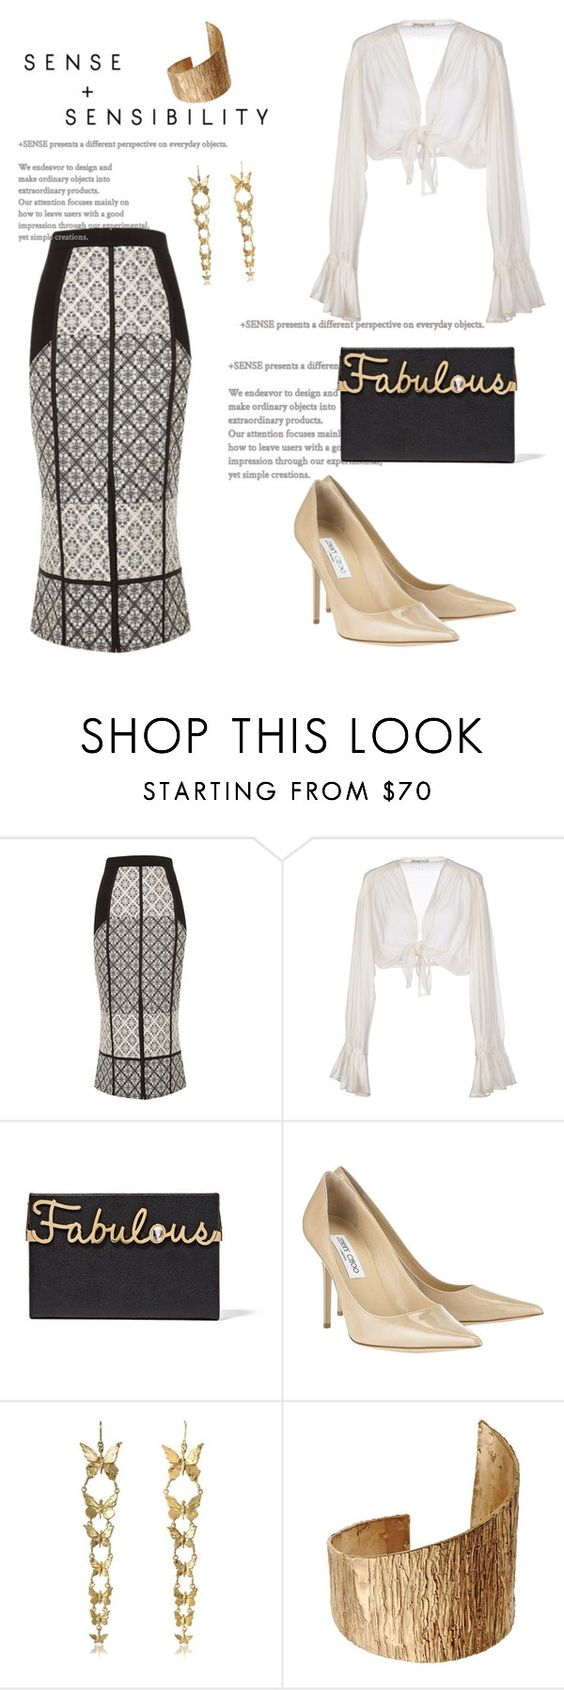 """Untitled #3047"" by janicemckay ❤ liked on Polyvore featuring River Island, Mes Demoiselles..., Charlotte Olympia, Jimmy Choo, Bernard Delettrez and First People First"